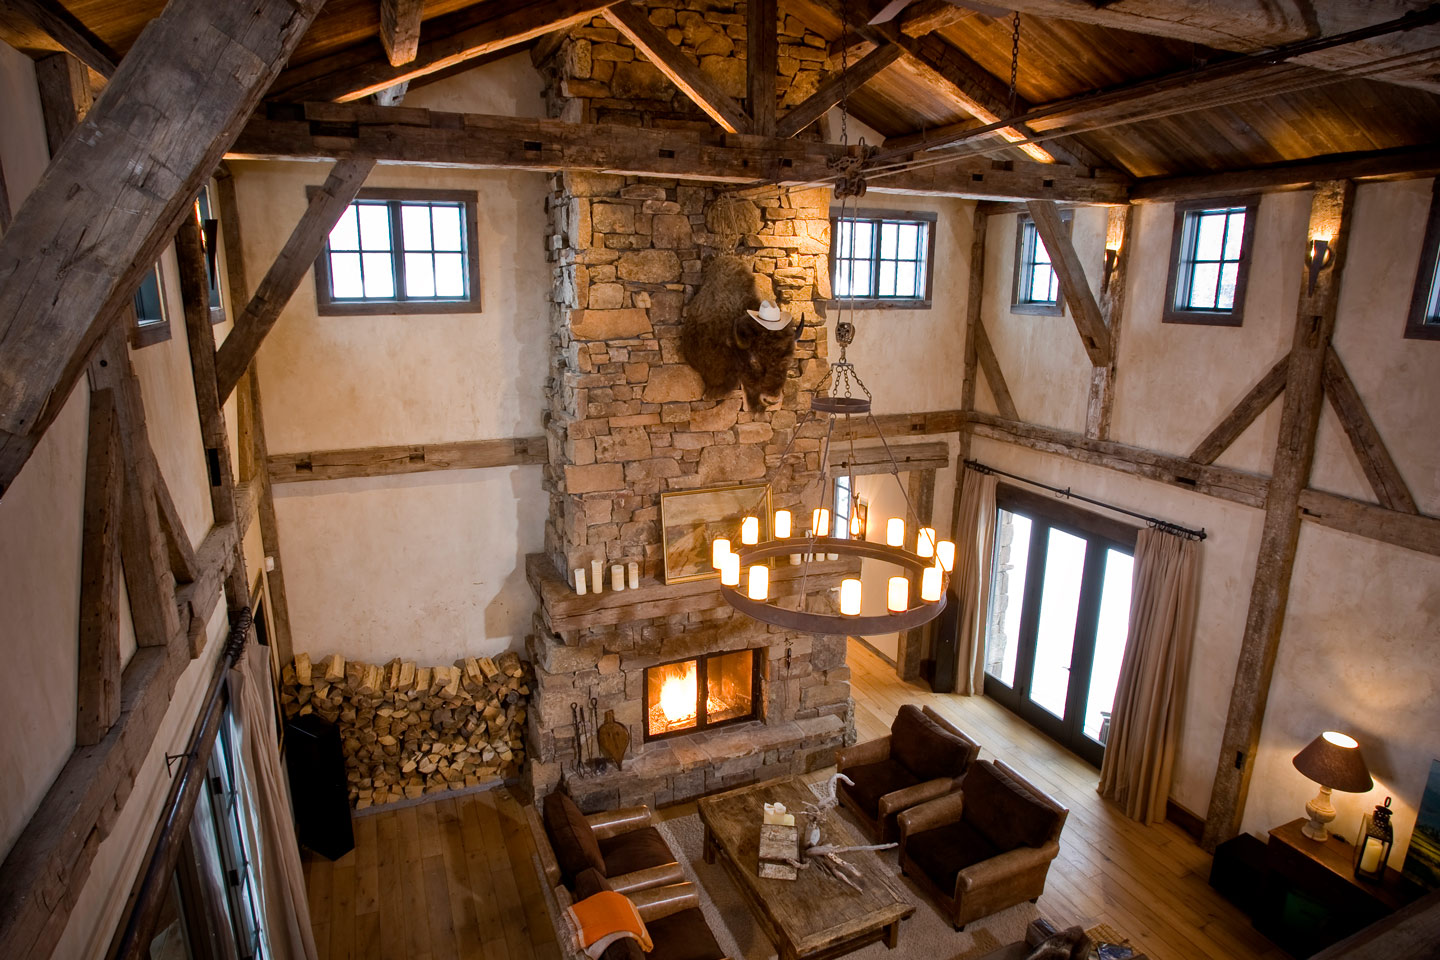 Bird's eye view of the fireplace and living room